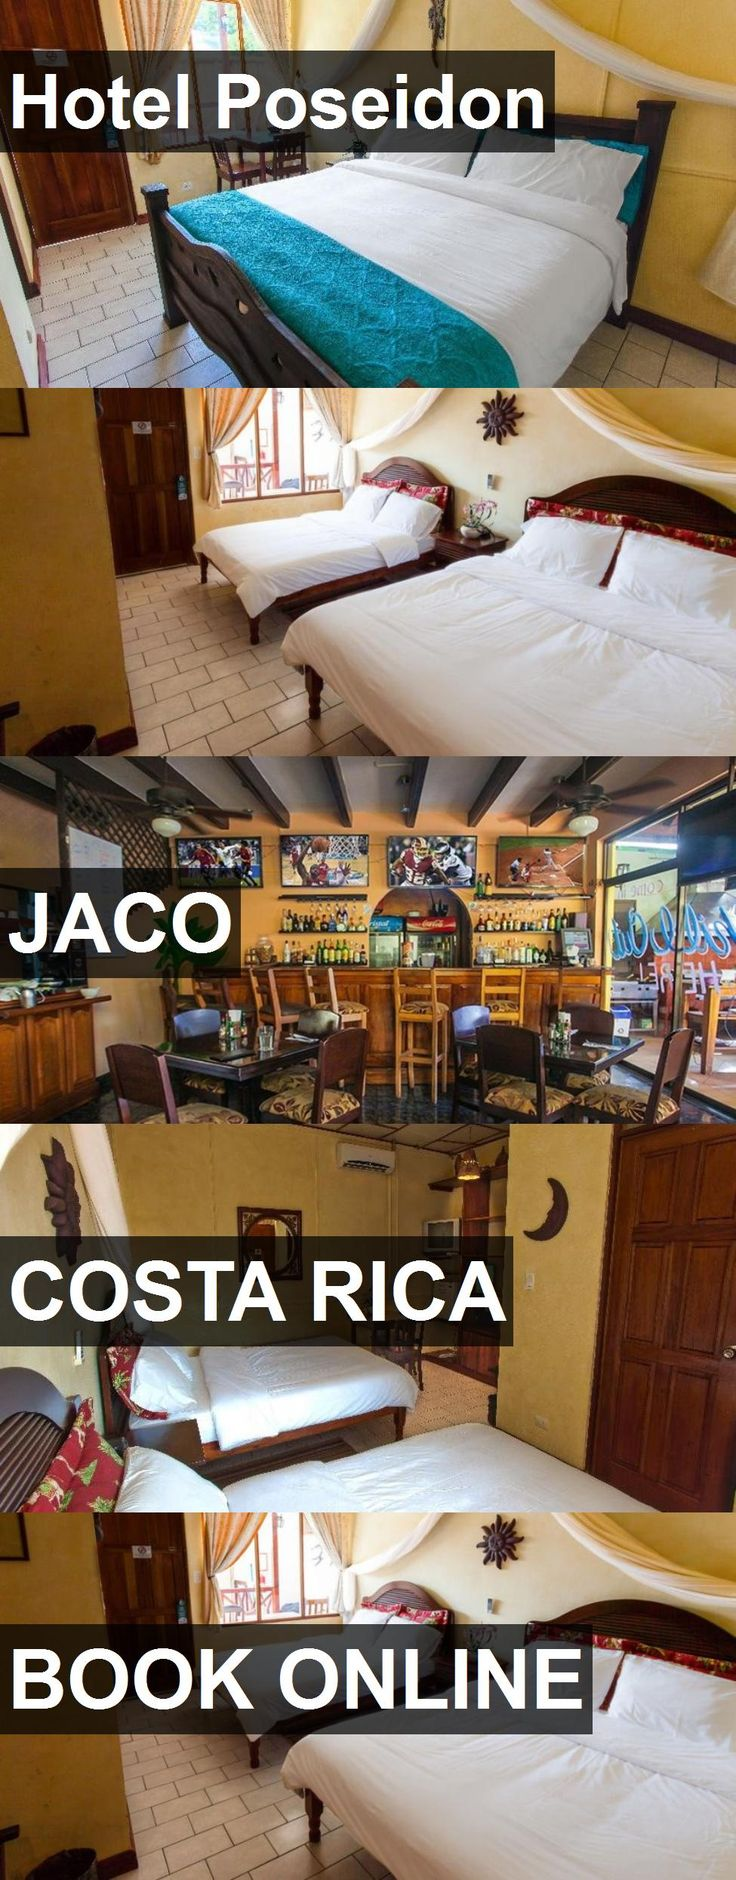 Hotel Hotel Poseidon in Jaco, Costa Rica. For more information, photos, reviews and best prices please follow the link. #CostaRica #Jaco #HotelPoseidon #hotel #travel #vacation